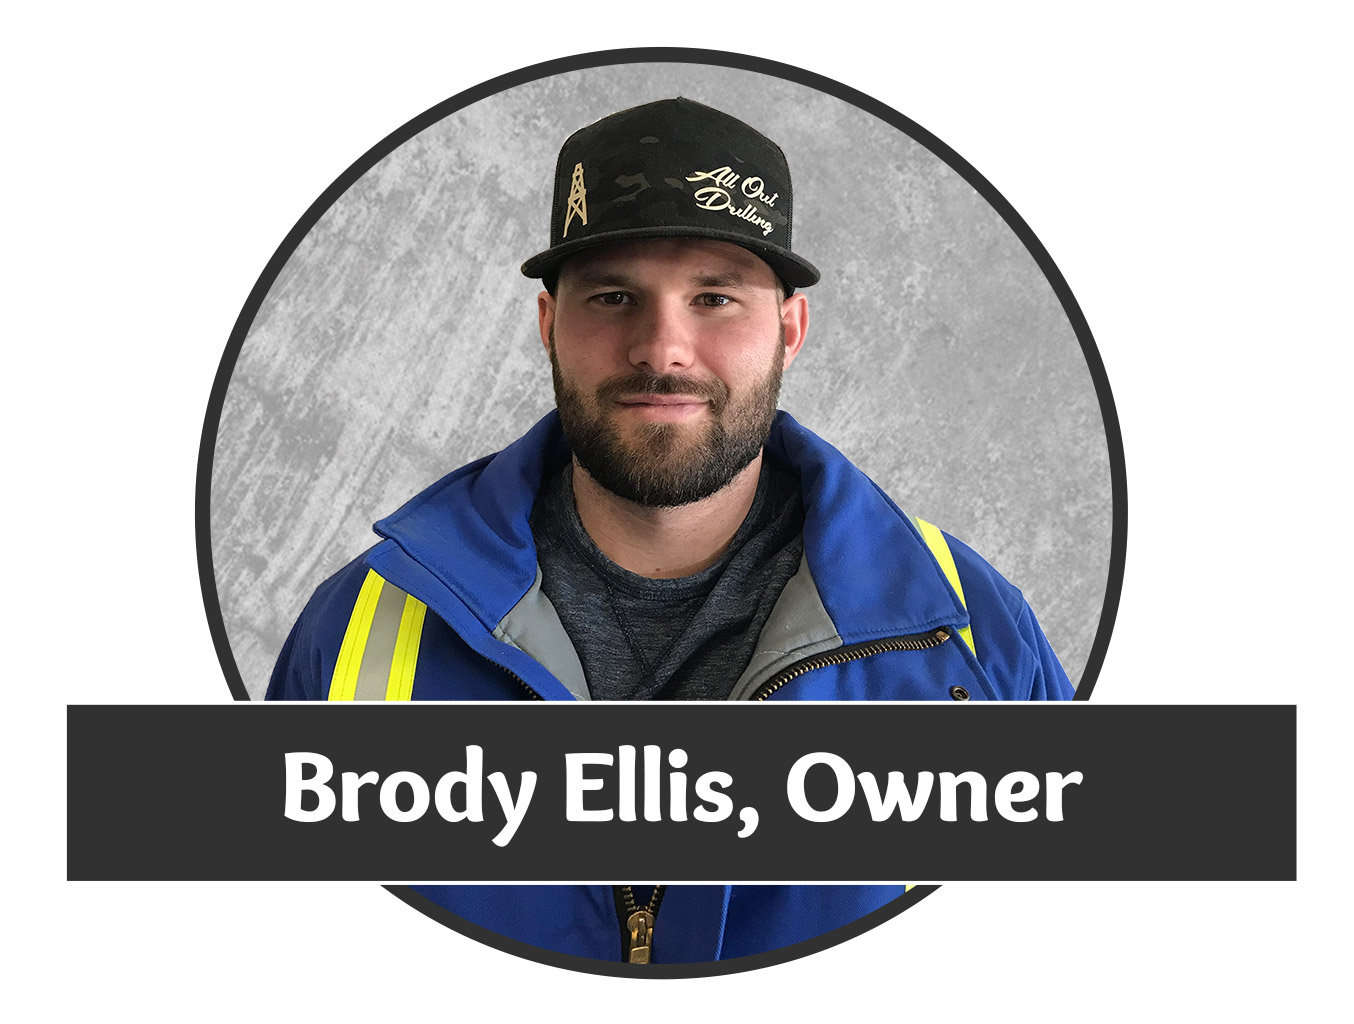 Headshot photo of Brody Ellis, one of the owners for Saskatchewan's superior water well drilling company.